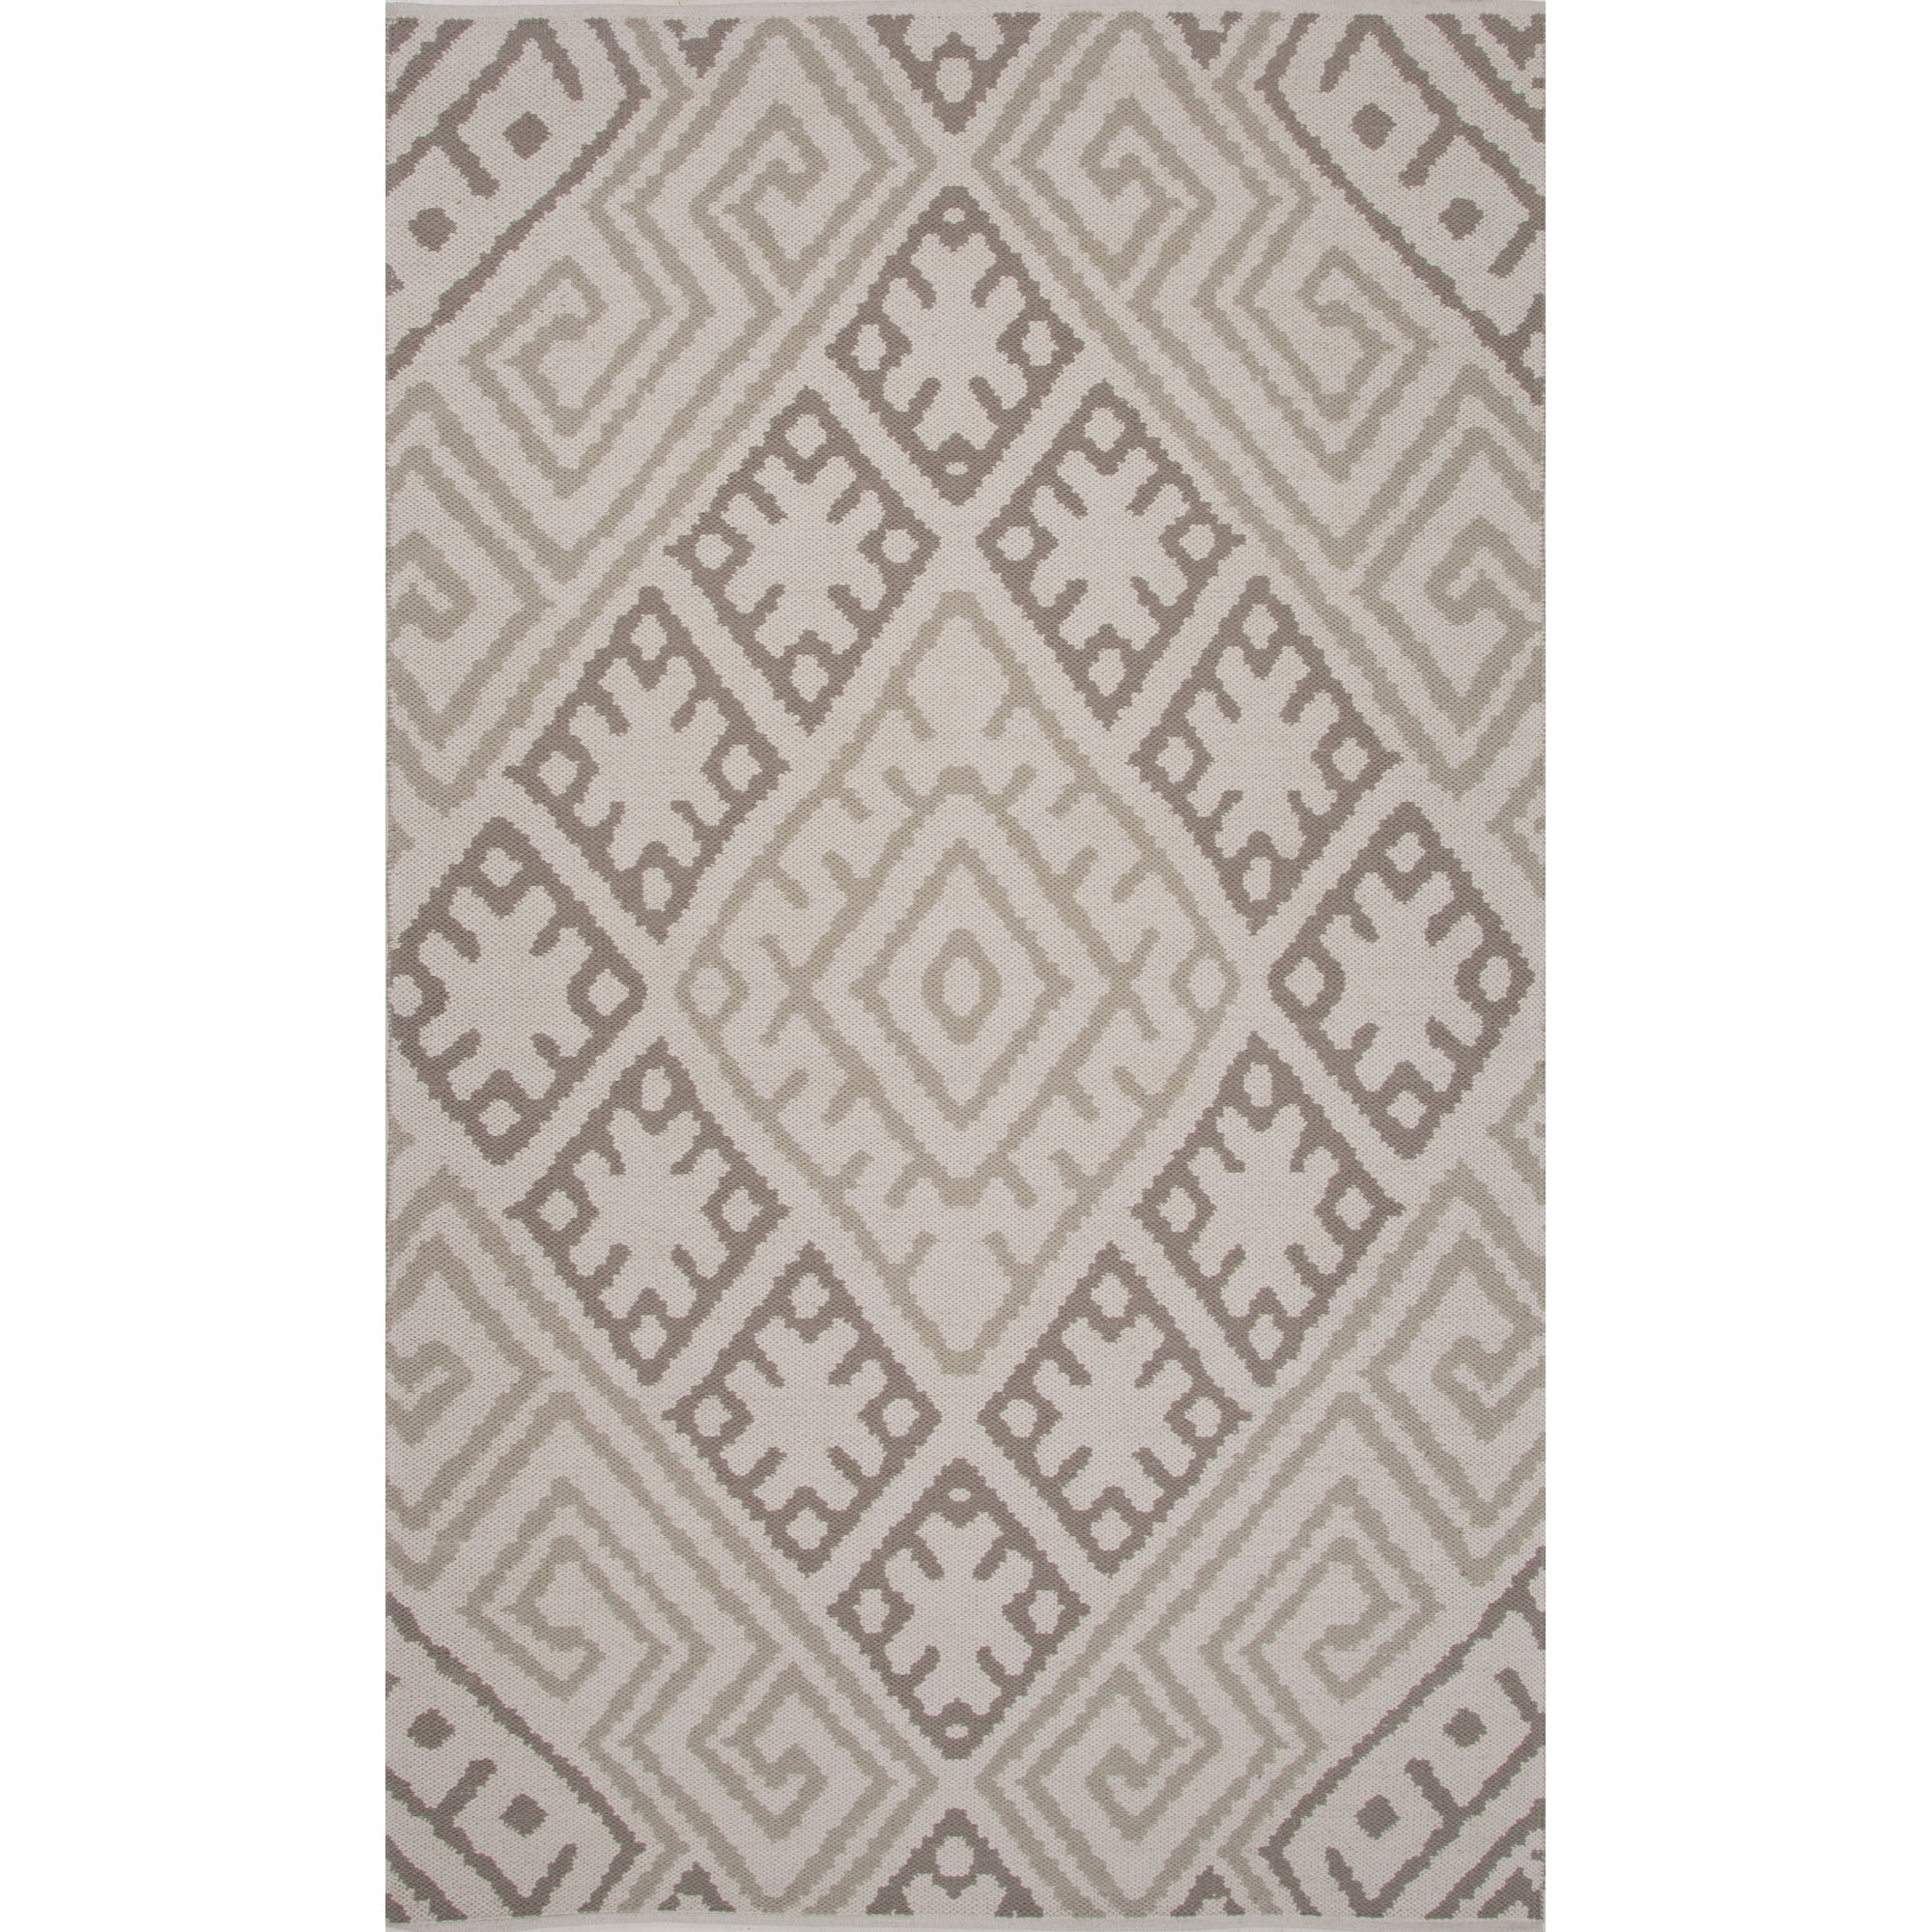 JAIPUR Rugs Traditions Modern Cotton Flat Weave 2 x 3 Rug - Item Number: RUG122236